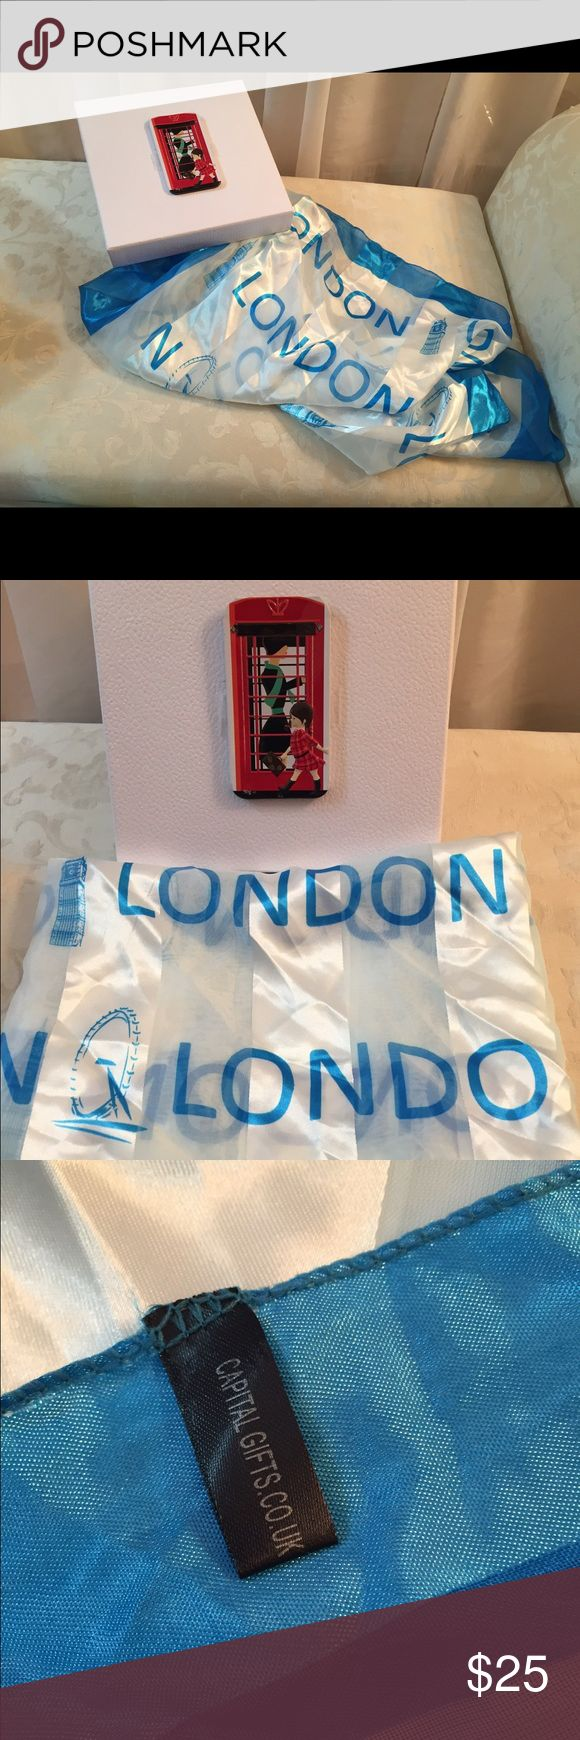 London Long Scarf Light Blue and white scarf, bought in London, very good condition. Dimensions: 38 X 38 approx. London Accessories Scarves & Wraps